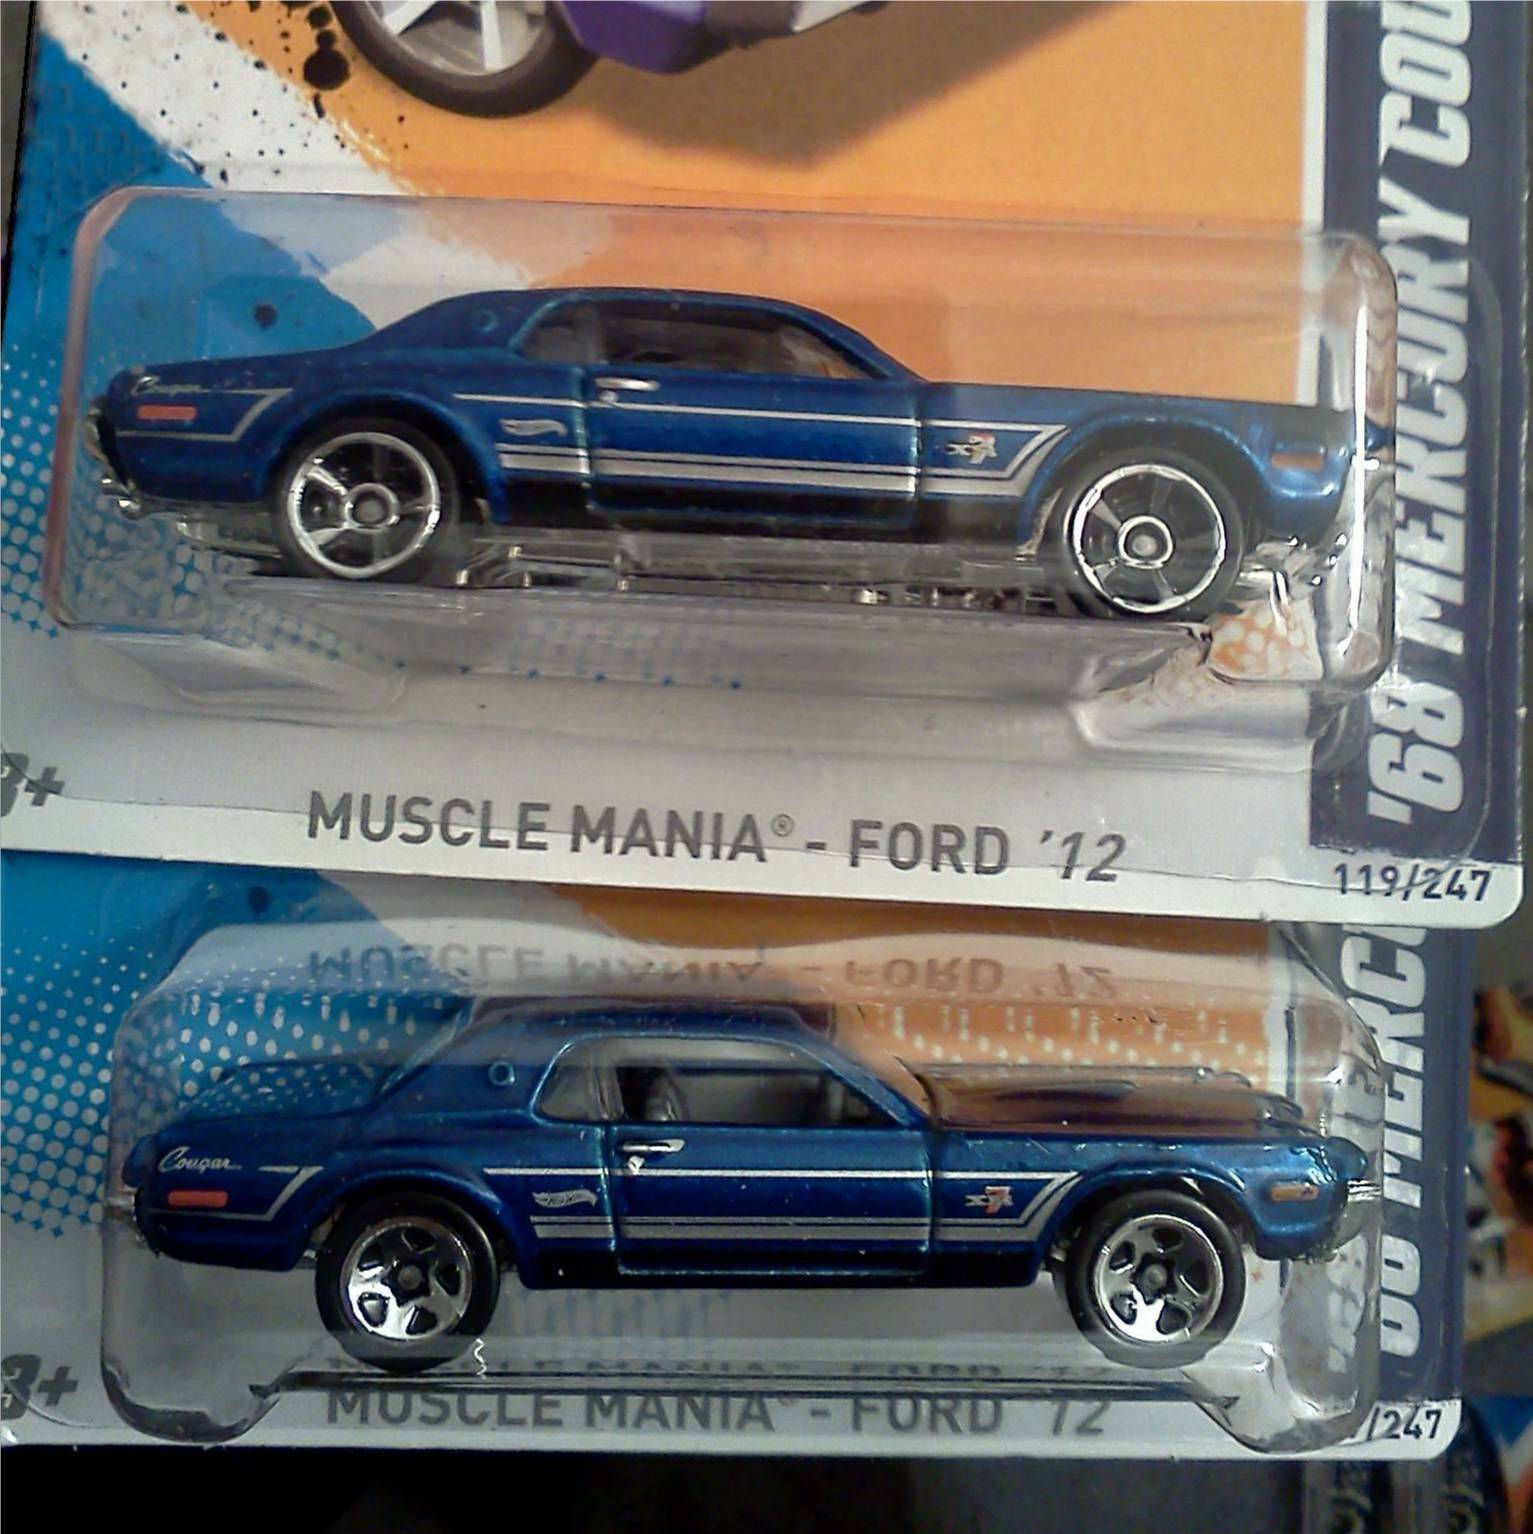 Hot Wheels Muscle Mania 5 spoke Variations.